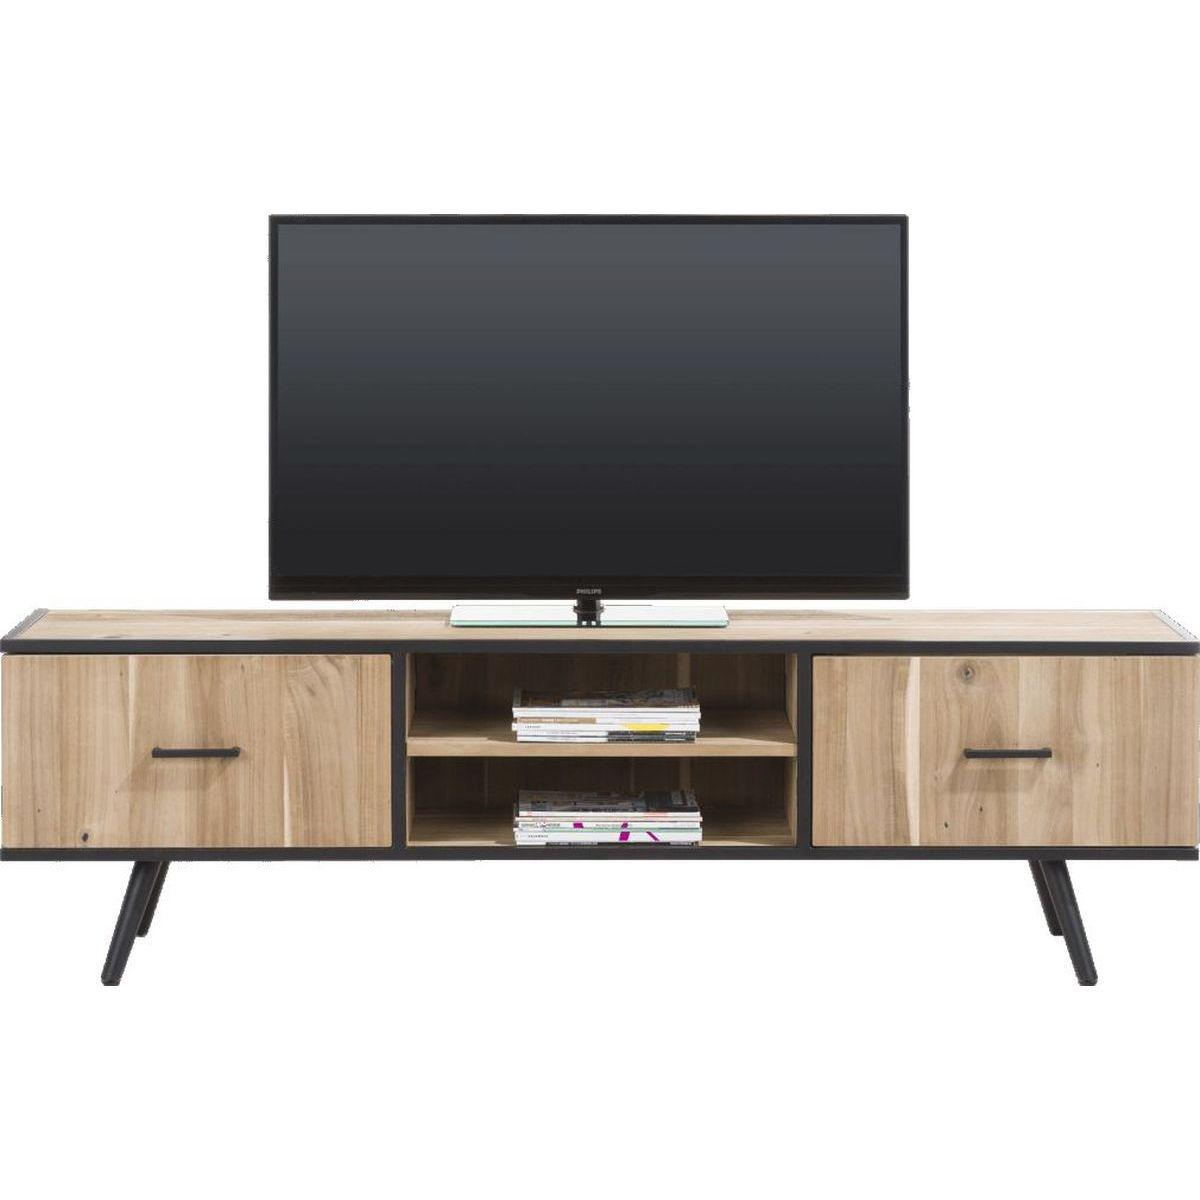 Meuble TV KINNA Xooon 190cm